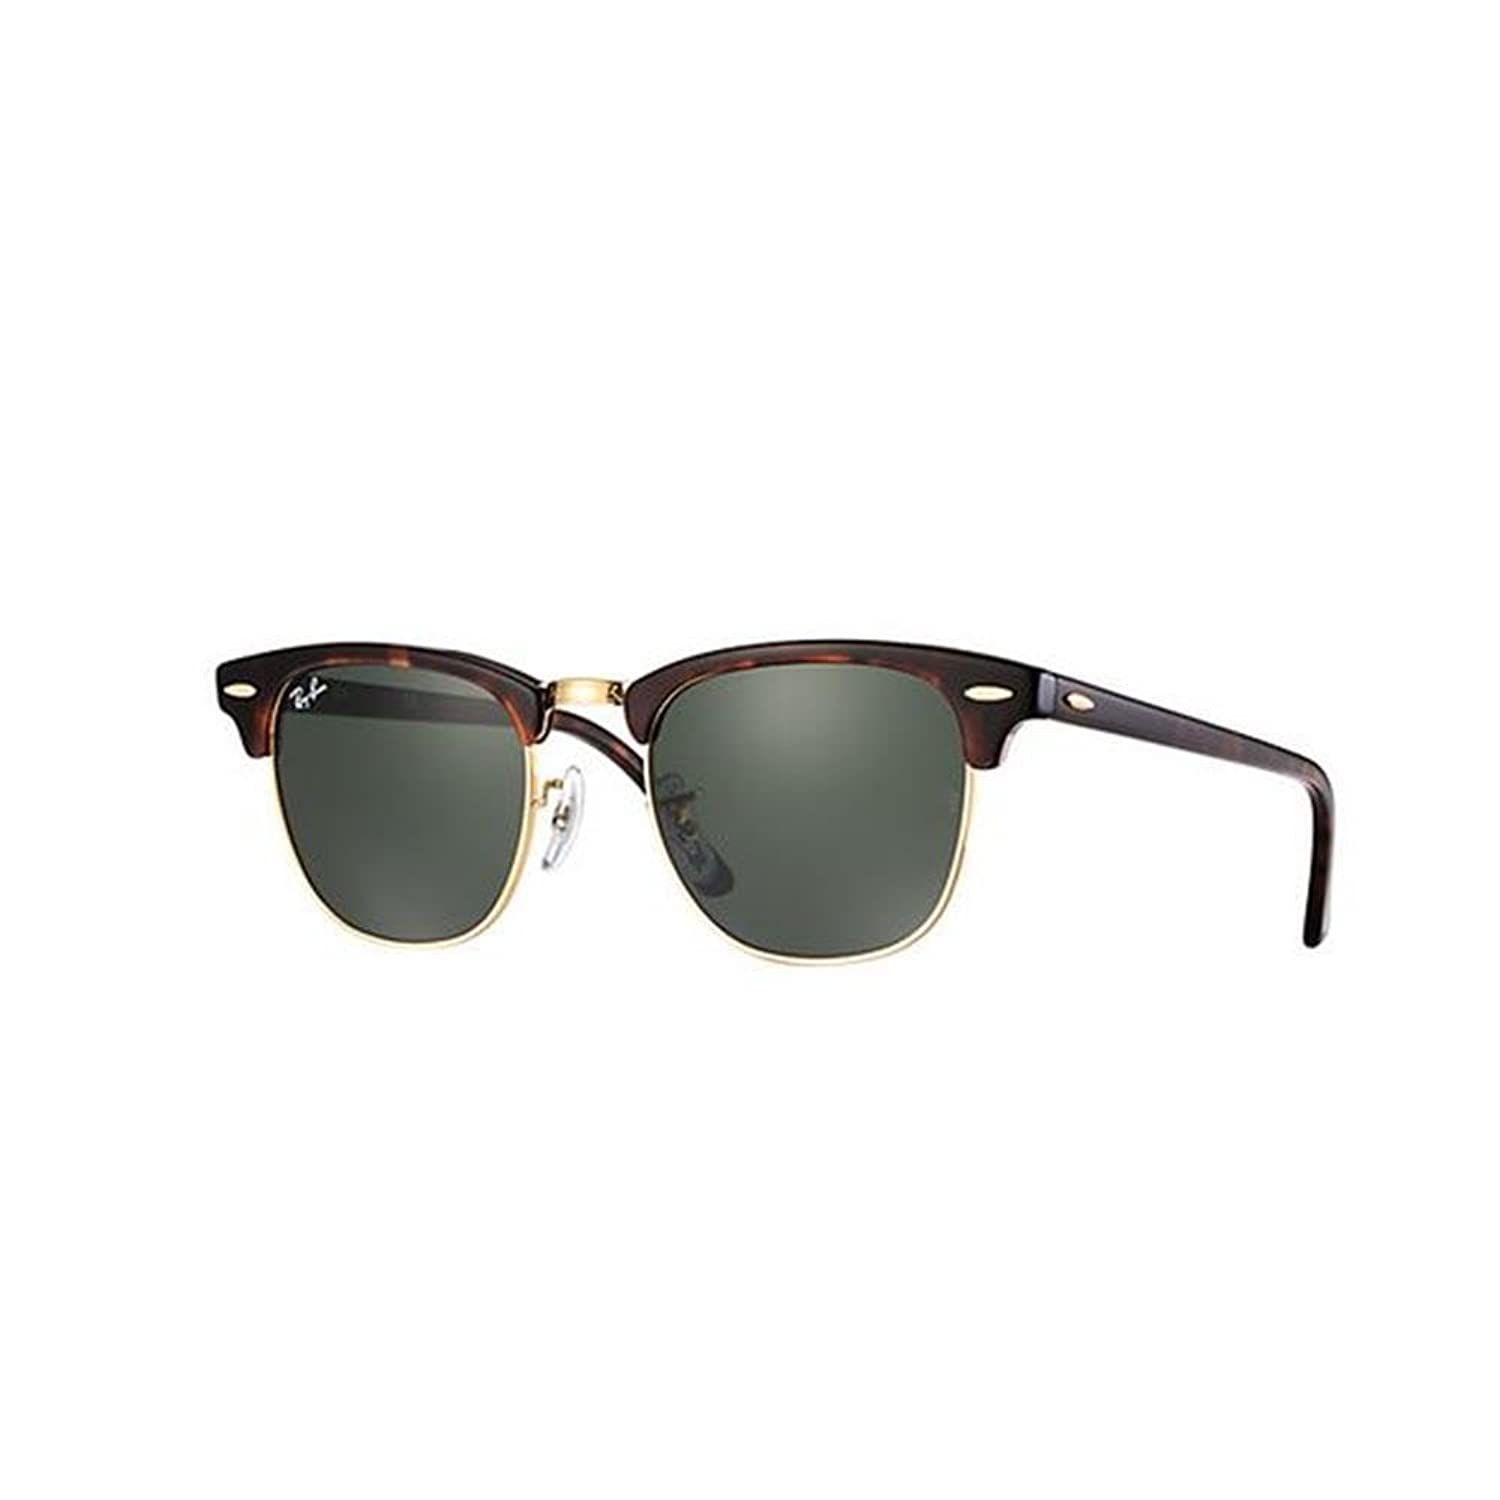 ray ban polarized sunglasses walmart  ray ban rb3016 classic clubmaster sunglasses